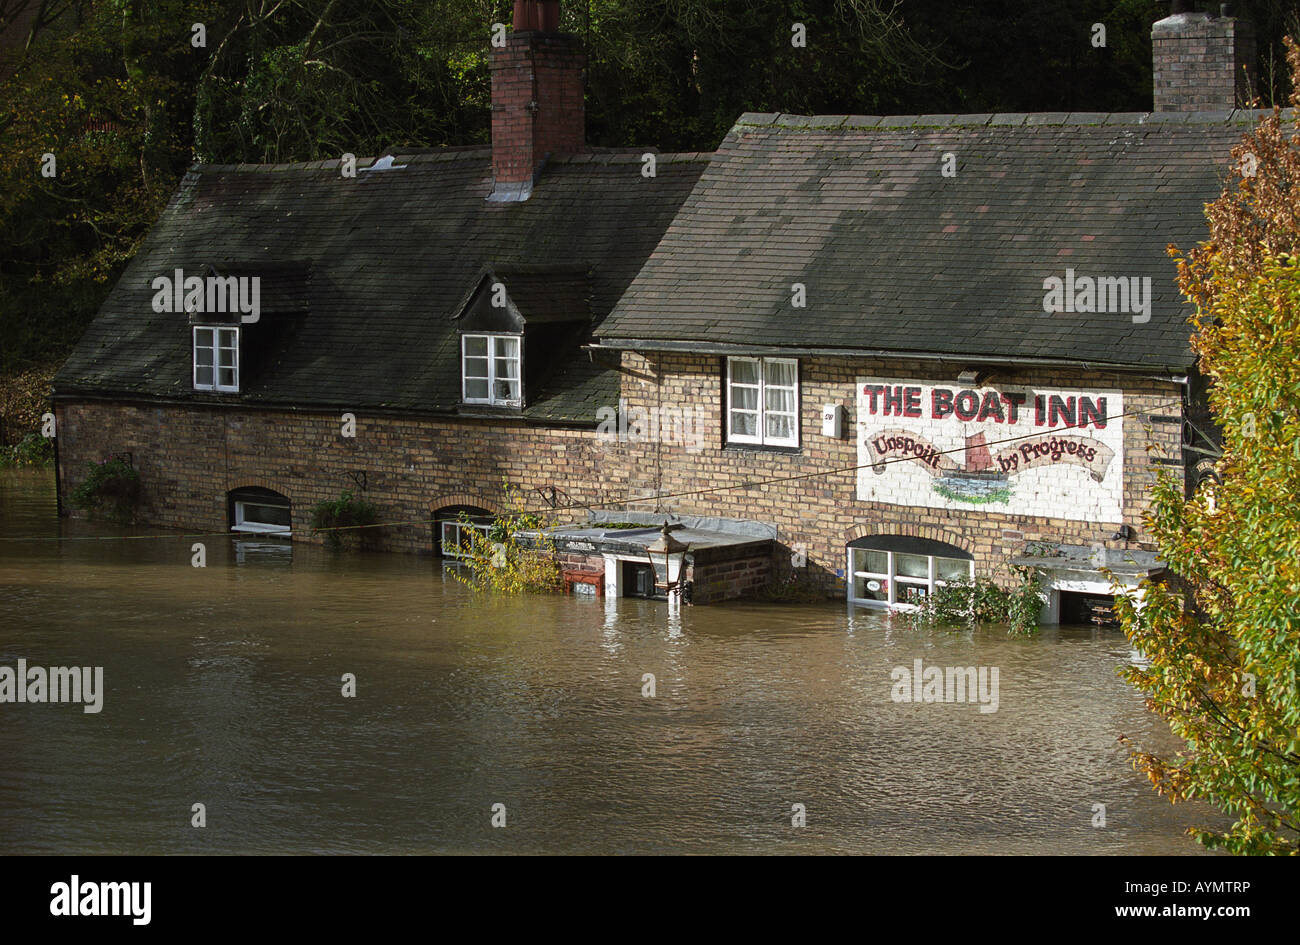 The River Severn in flood at the Boat Inn Jackfield in 2000 - Stock Image